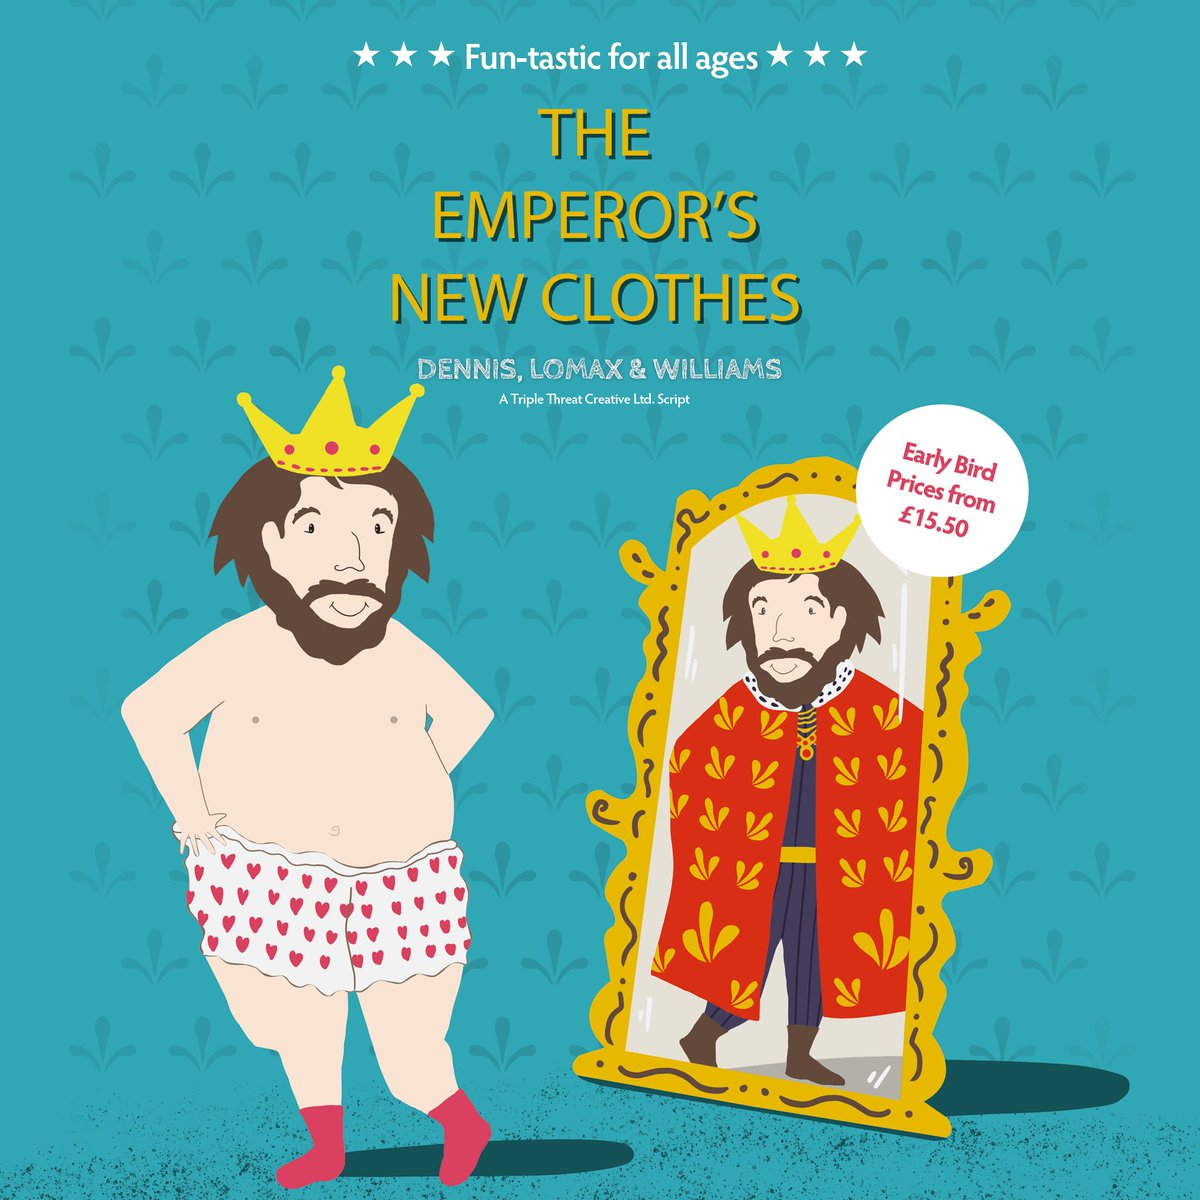 Gordon Craig Theatre On Twitter Easter 2019 The Emperors New Emperor Clothes Sale Now Gctstevenage Earlybird Tickets Until 31st January Https Craigcouk I2027